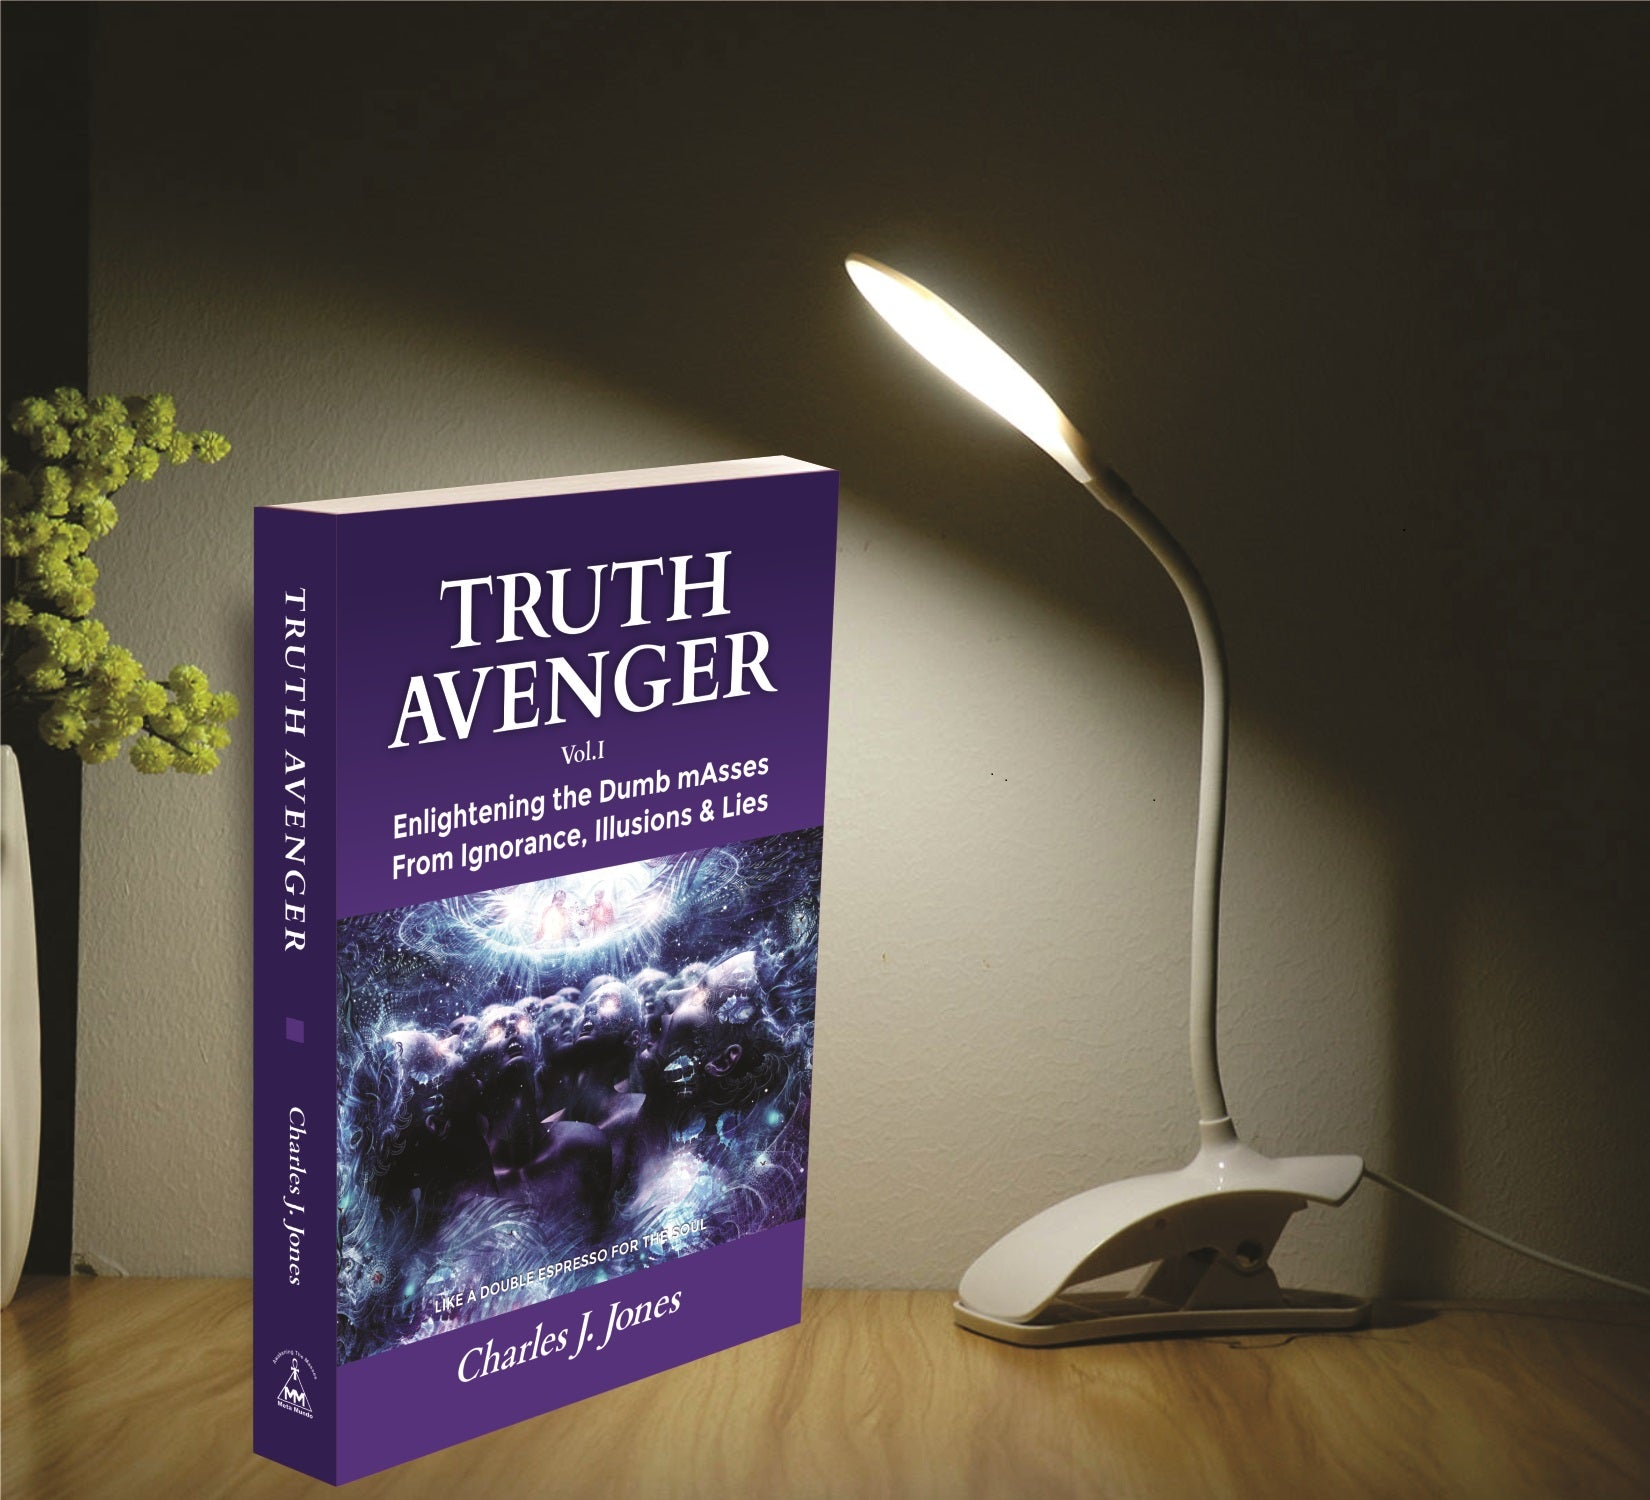 TRUTH AVENGER Vol. I